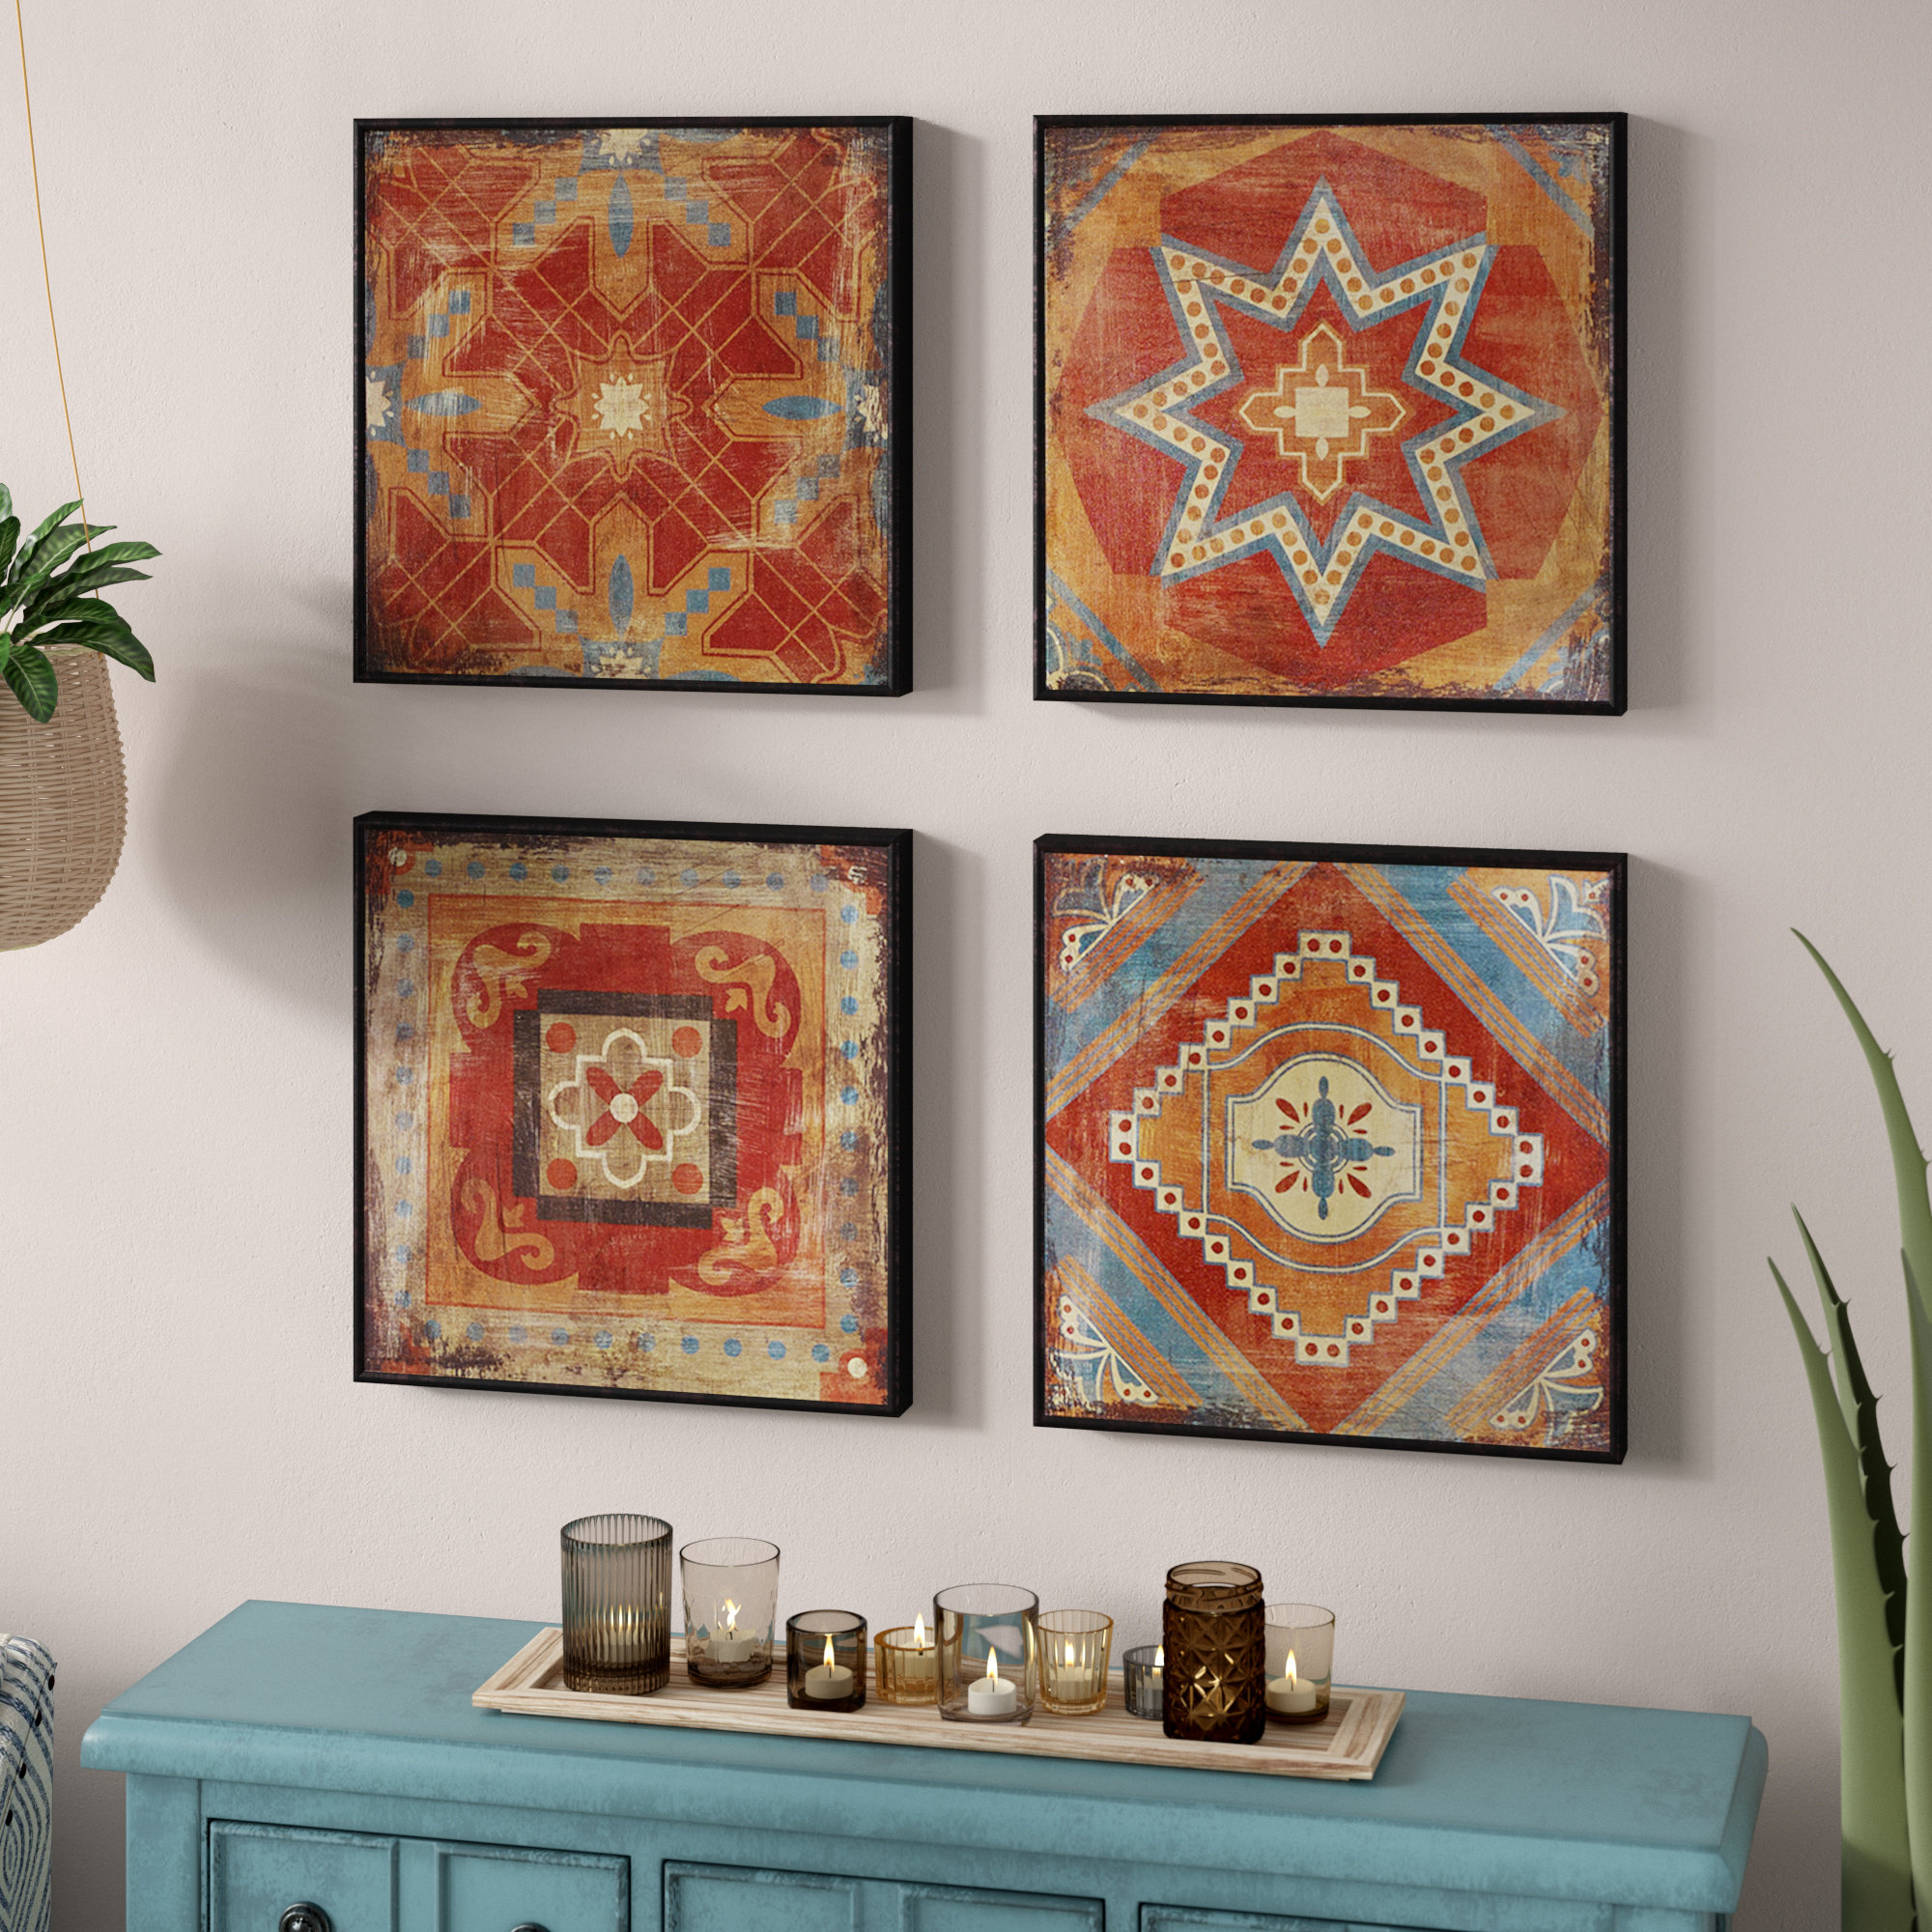 Saffron Gel Coated Decor Box 4 Piece Wall Décor Set Within 4 Piece Wall Decor Sets (View 3 of 30)